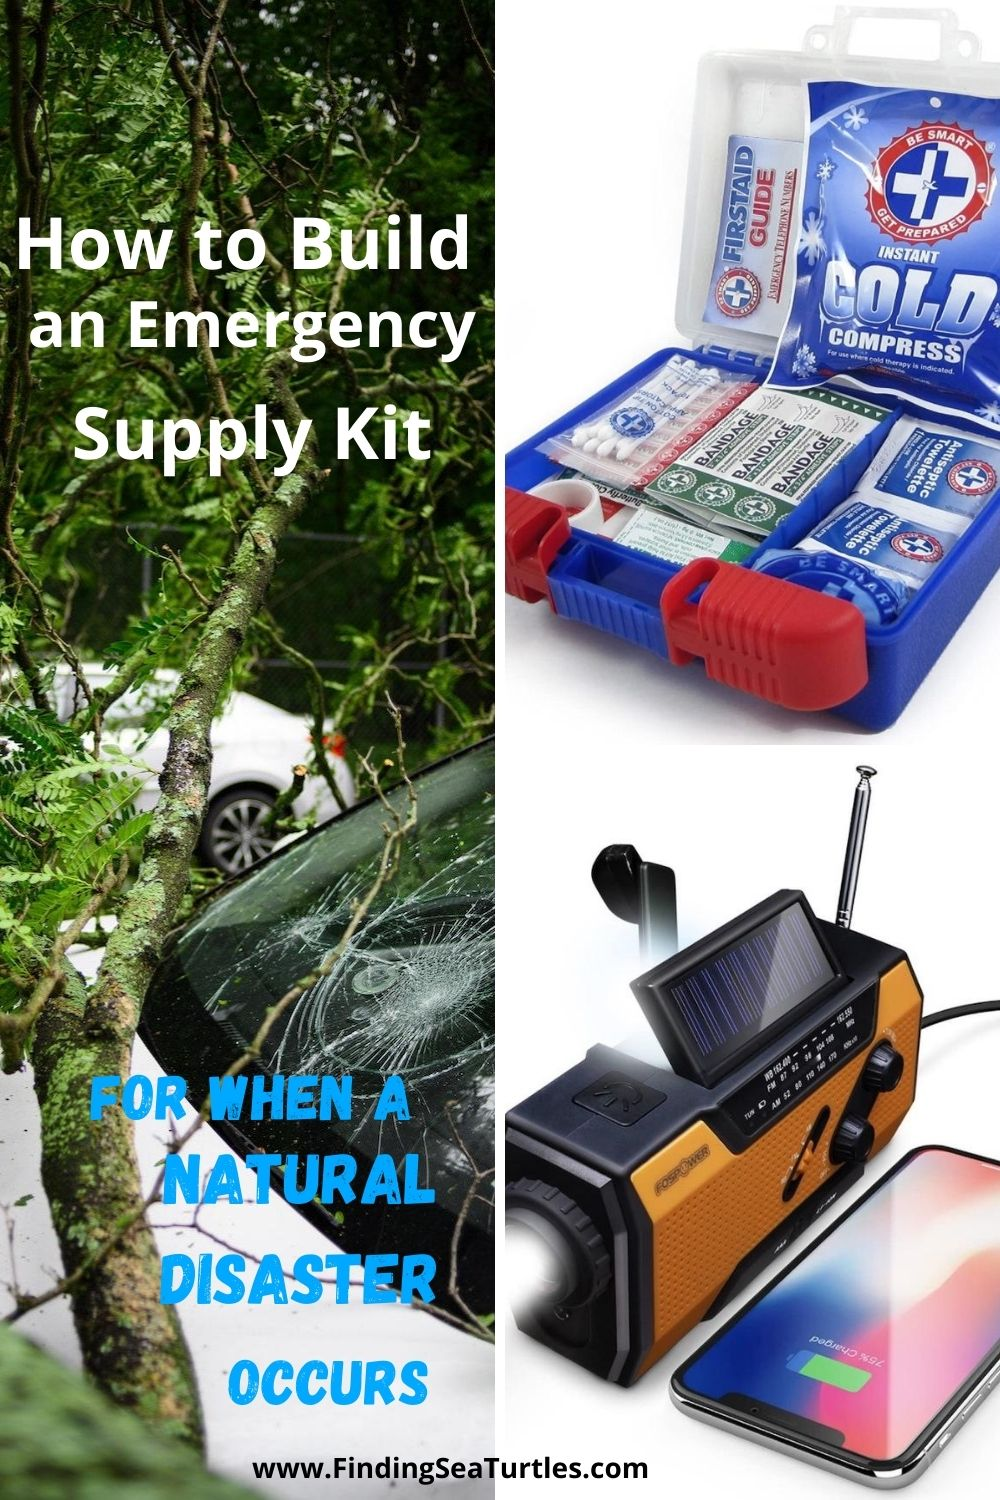 How to Build an Emergency Supply Kit for When a Natural Disaster Occurs #Emergency #EmergencySupplies #EmergencySupplyKit #FEMA